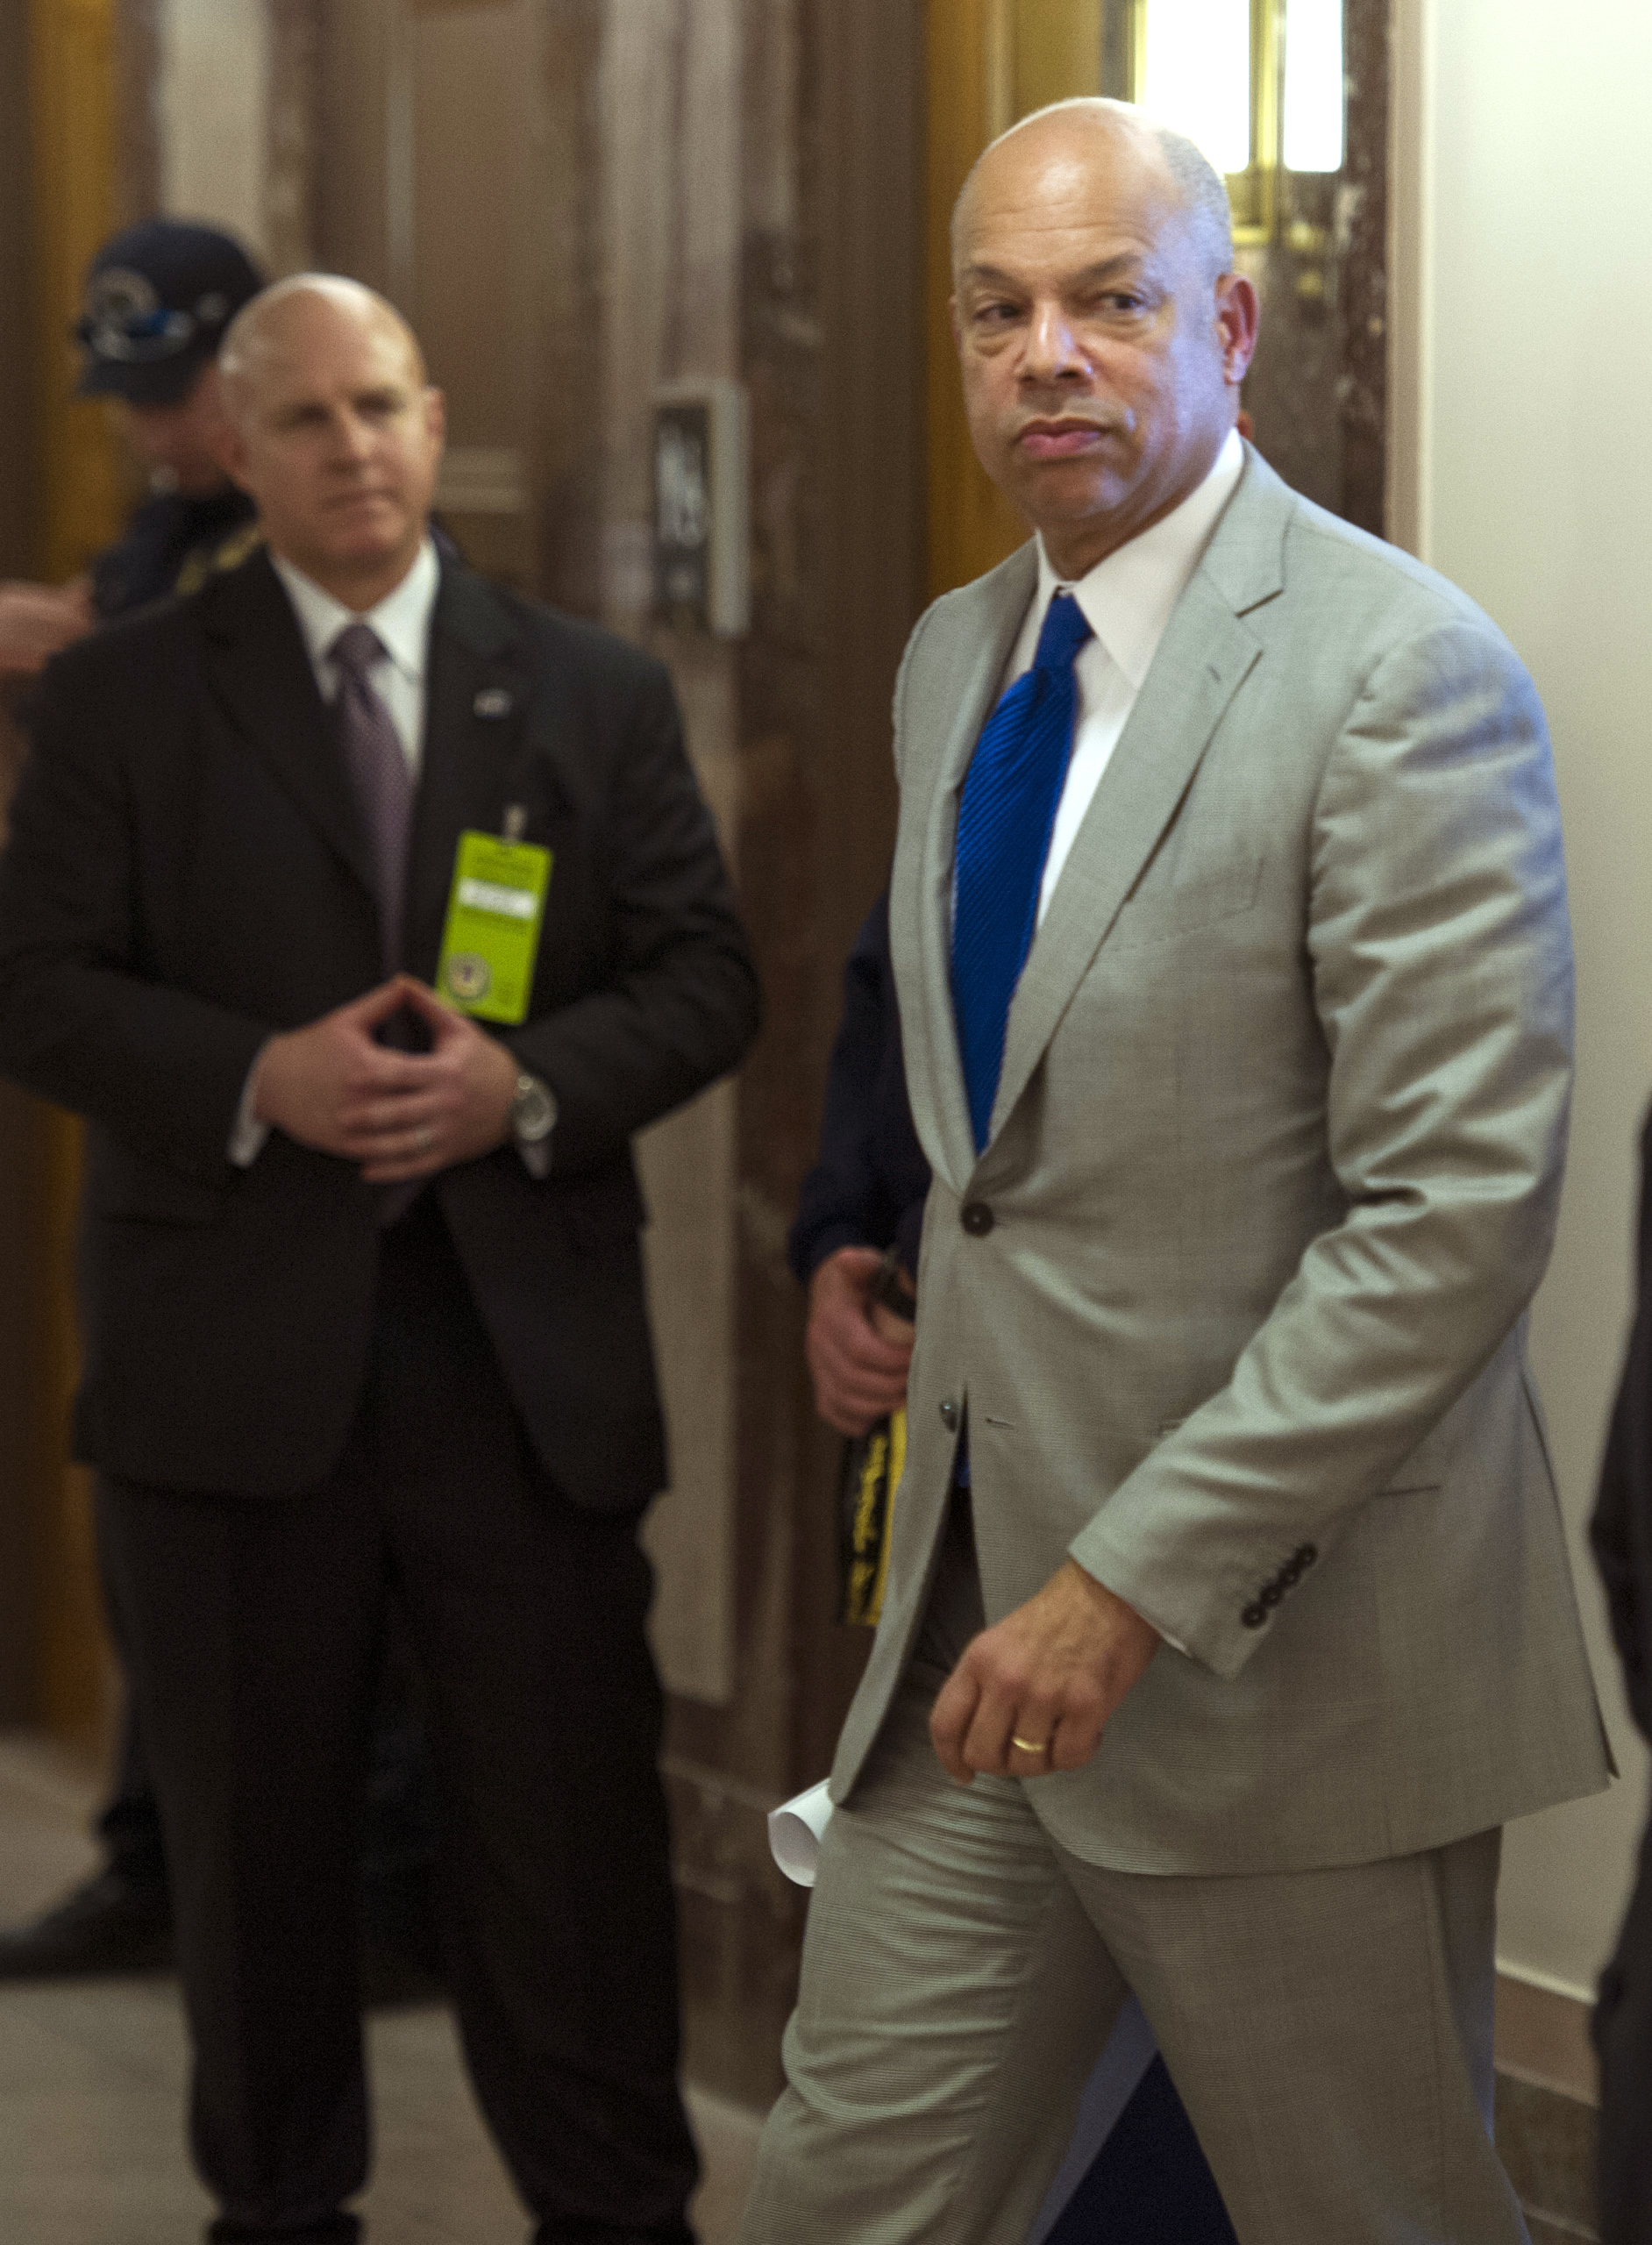 Homeland Security Secretary Jeh Johnson walks to a hearing room to answer questions before a closed meeting of the Senate Homeland Security Committee in Washington, D.C., on April 1, 2014.